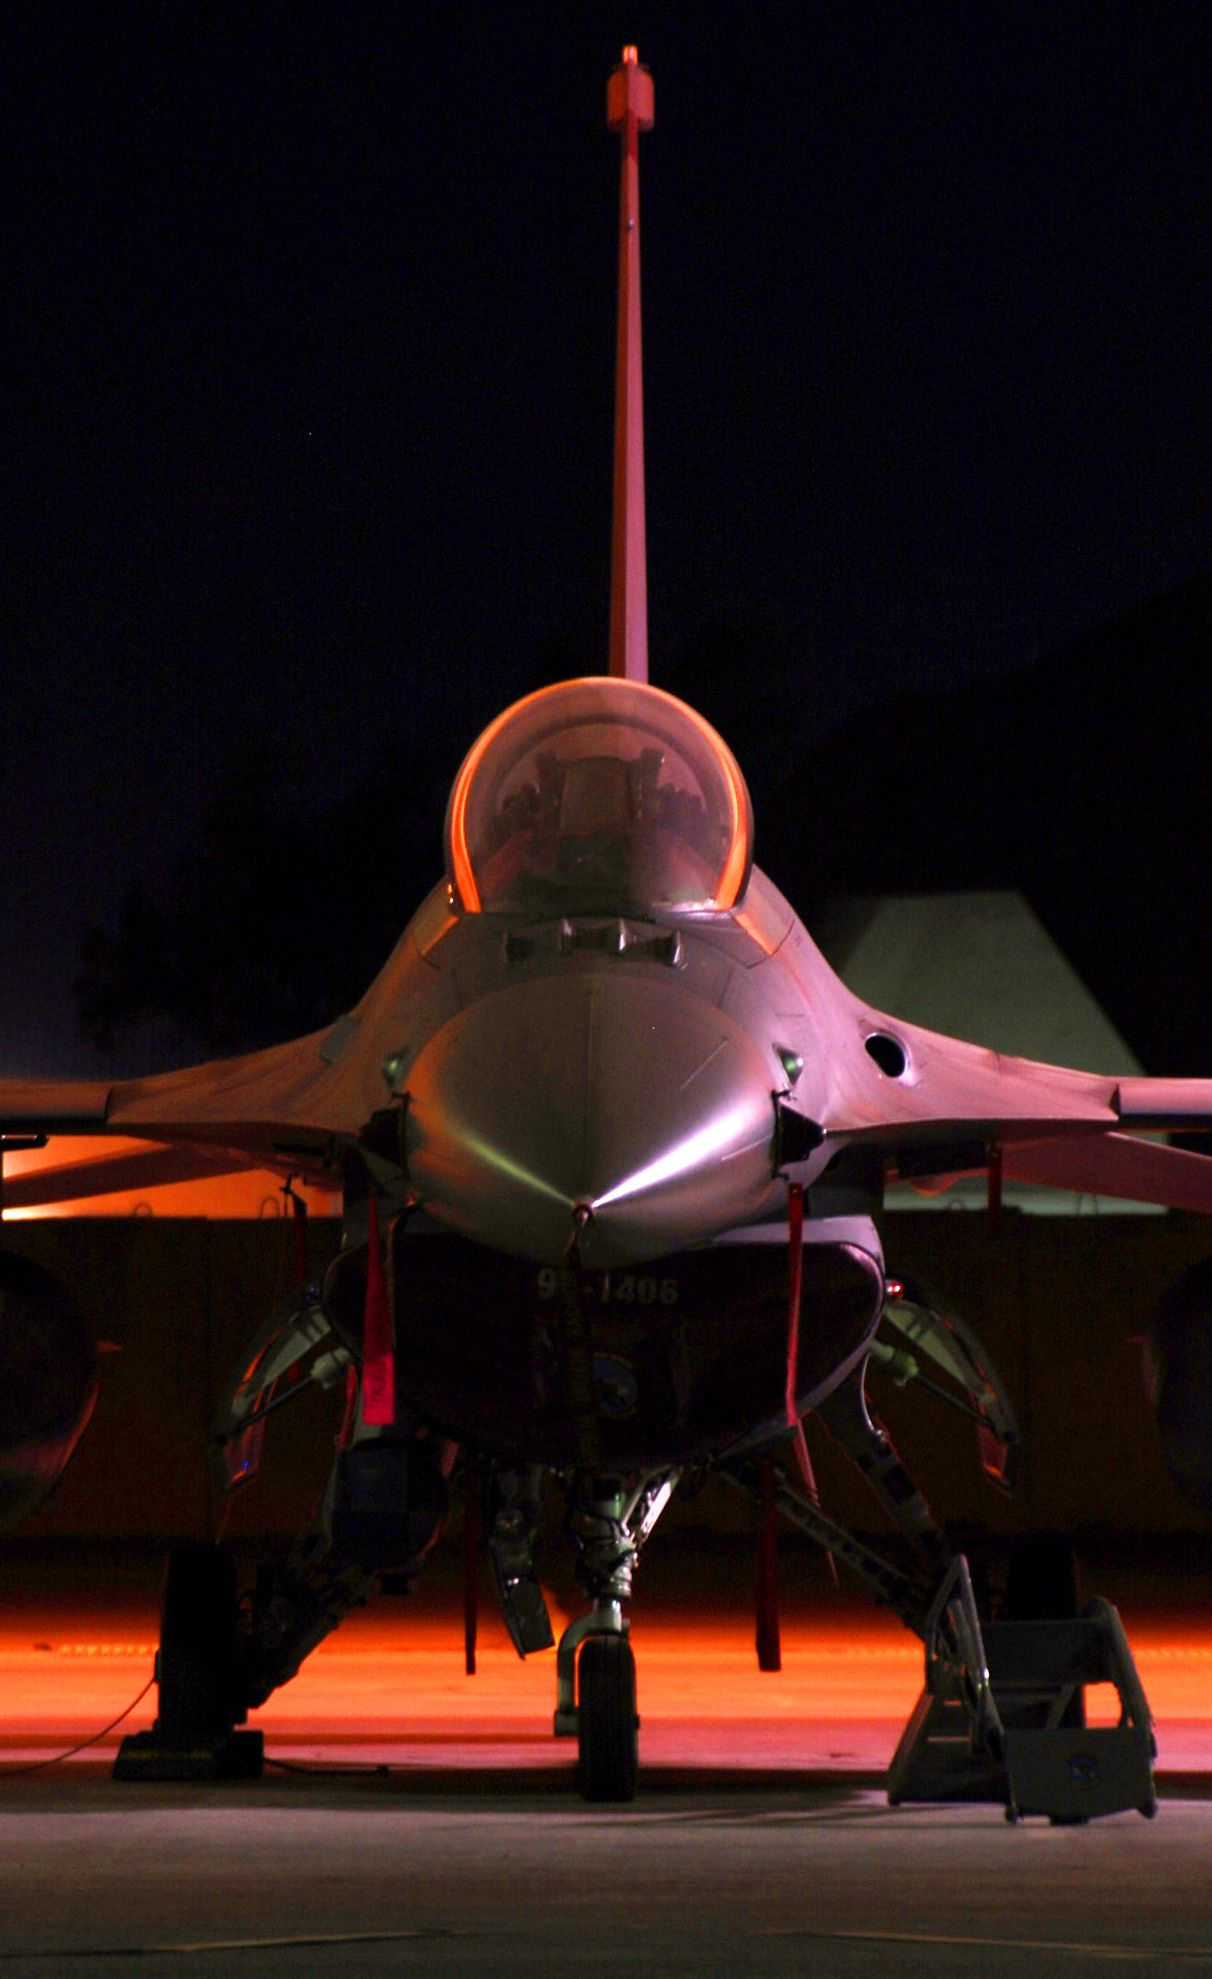 F16 Fighting Falcon See More Military Aviation Pics Www Fabuloussavers Com Wusair2 Shtml Thank You For Viewing Fighter Jets Fighter Planes Jets Fighter Planes